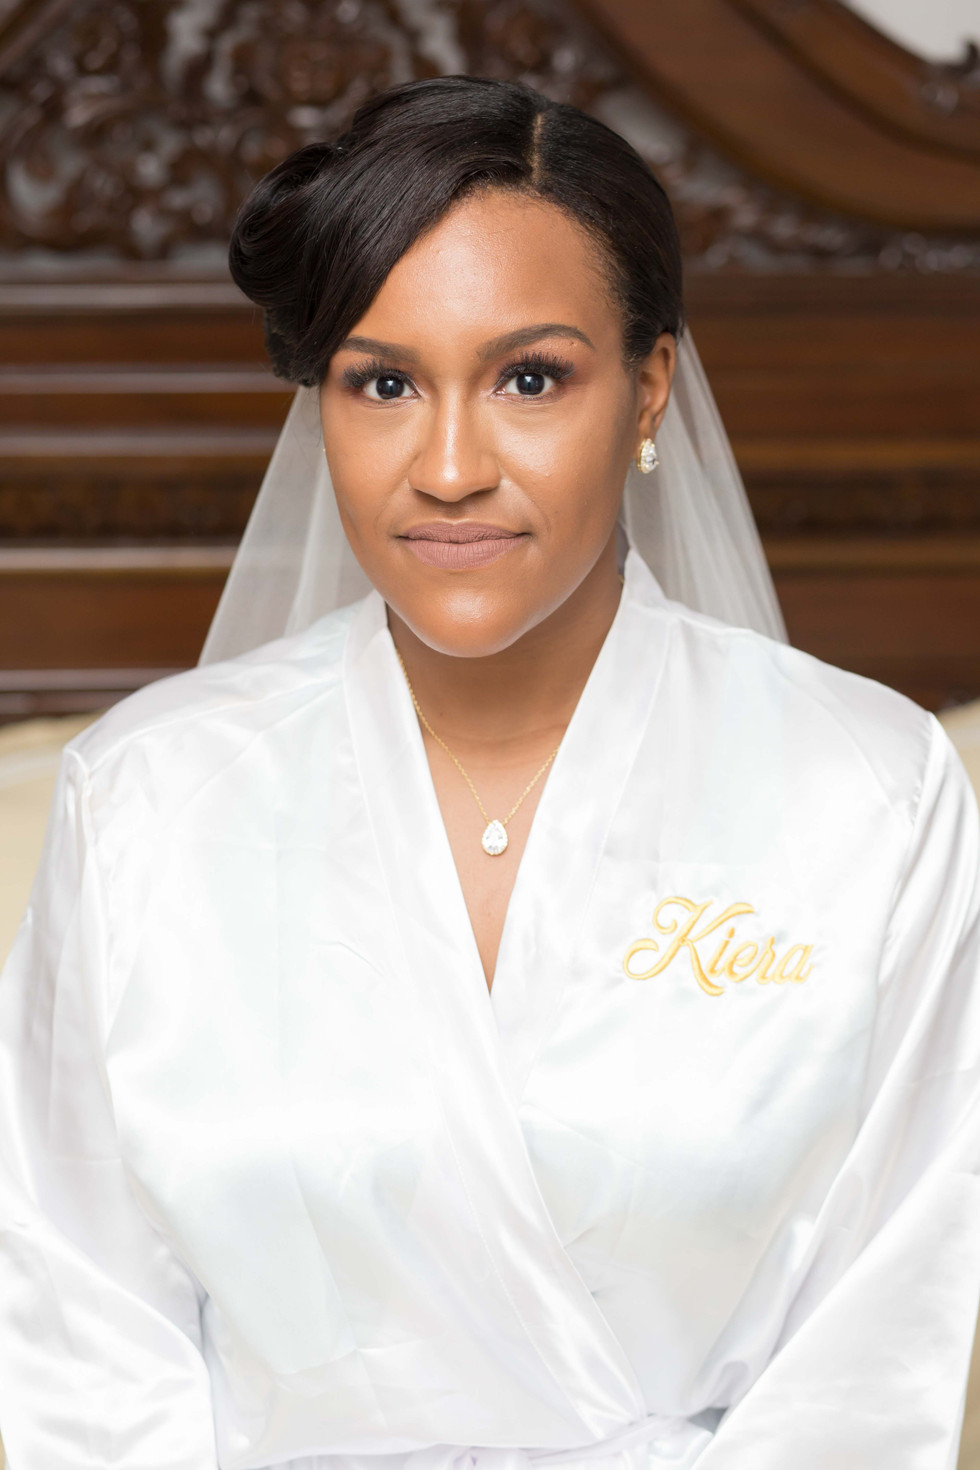 Bridal portrait after hair and makeup